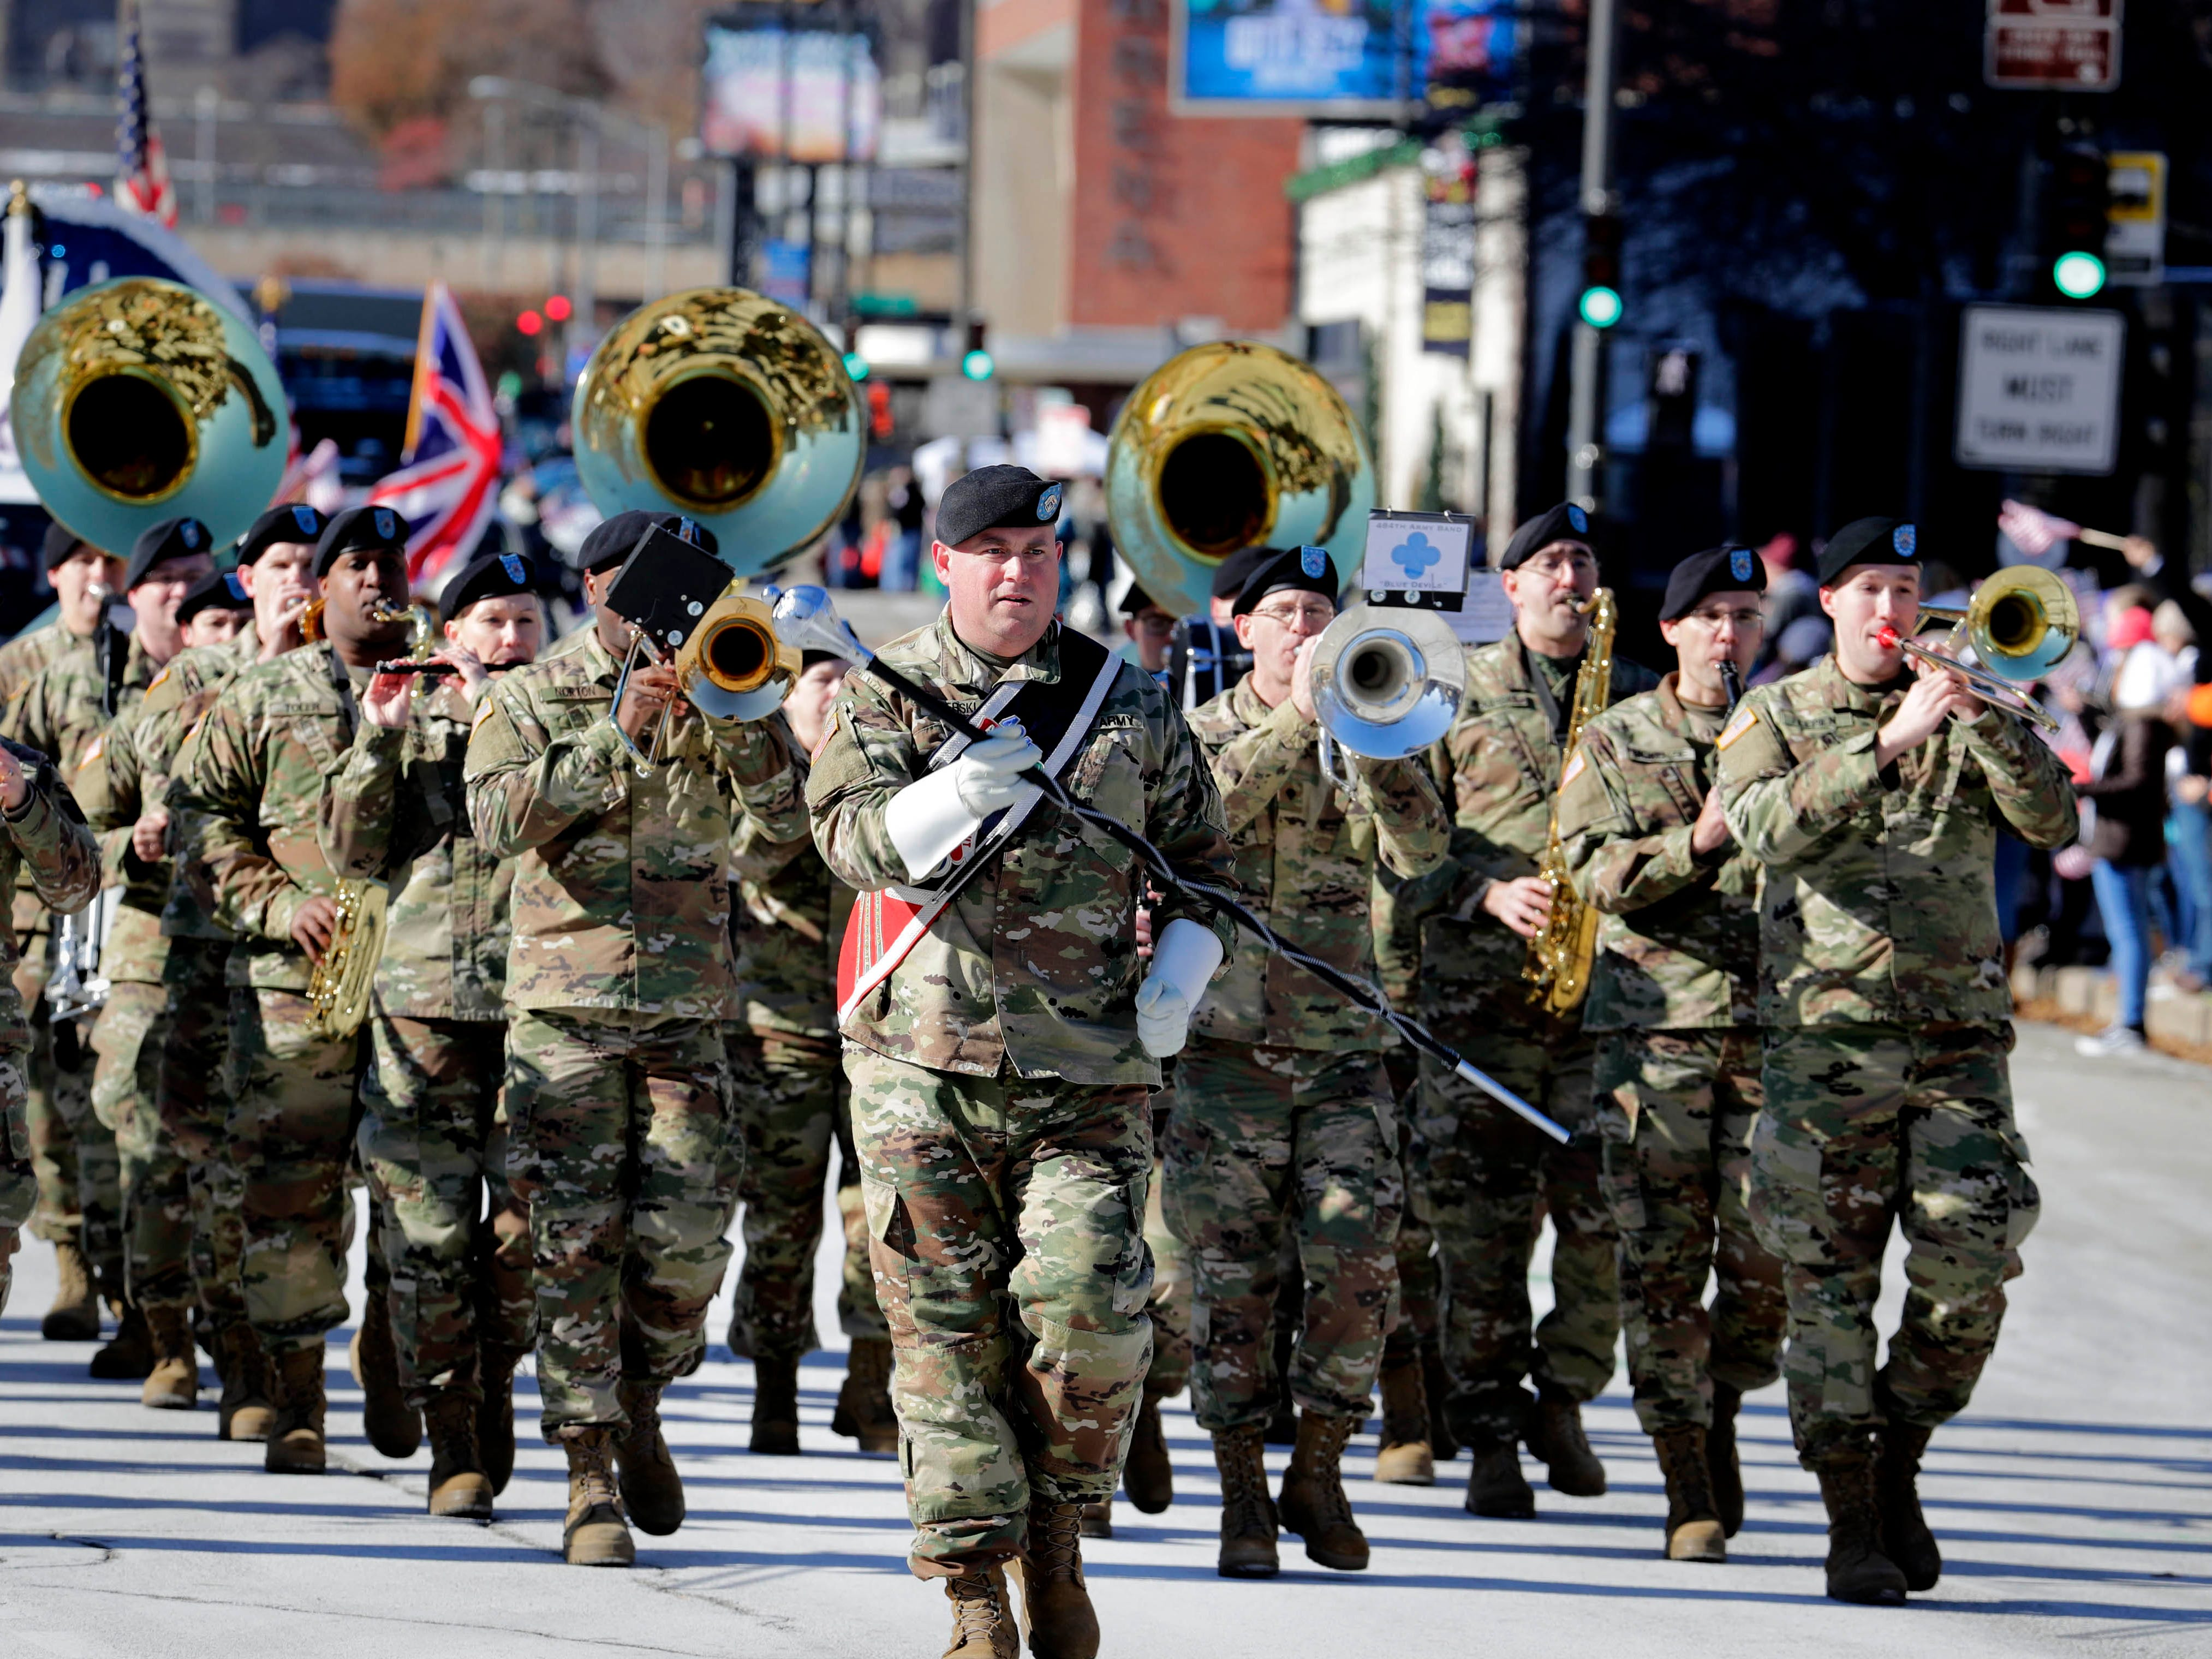 """Members of the 484th Army Band in Milwaukee  play """"As Those Caissons Go Rolling Along"""" during  Milwaukee's  Veterans Day parade on Saturday.  Ninety to 100 units participated in the parade, which commemorated  the centennial of the World War I armistice. A memorial service was also held at the Milwaukee County War Memorial."""